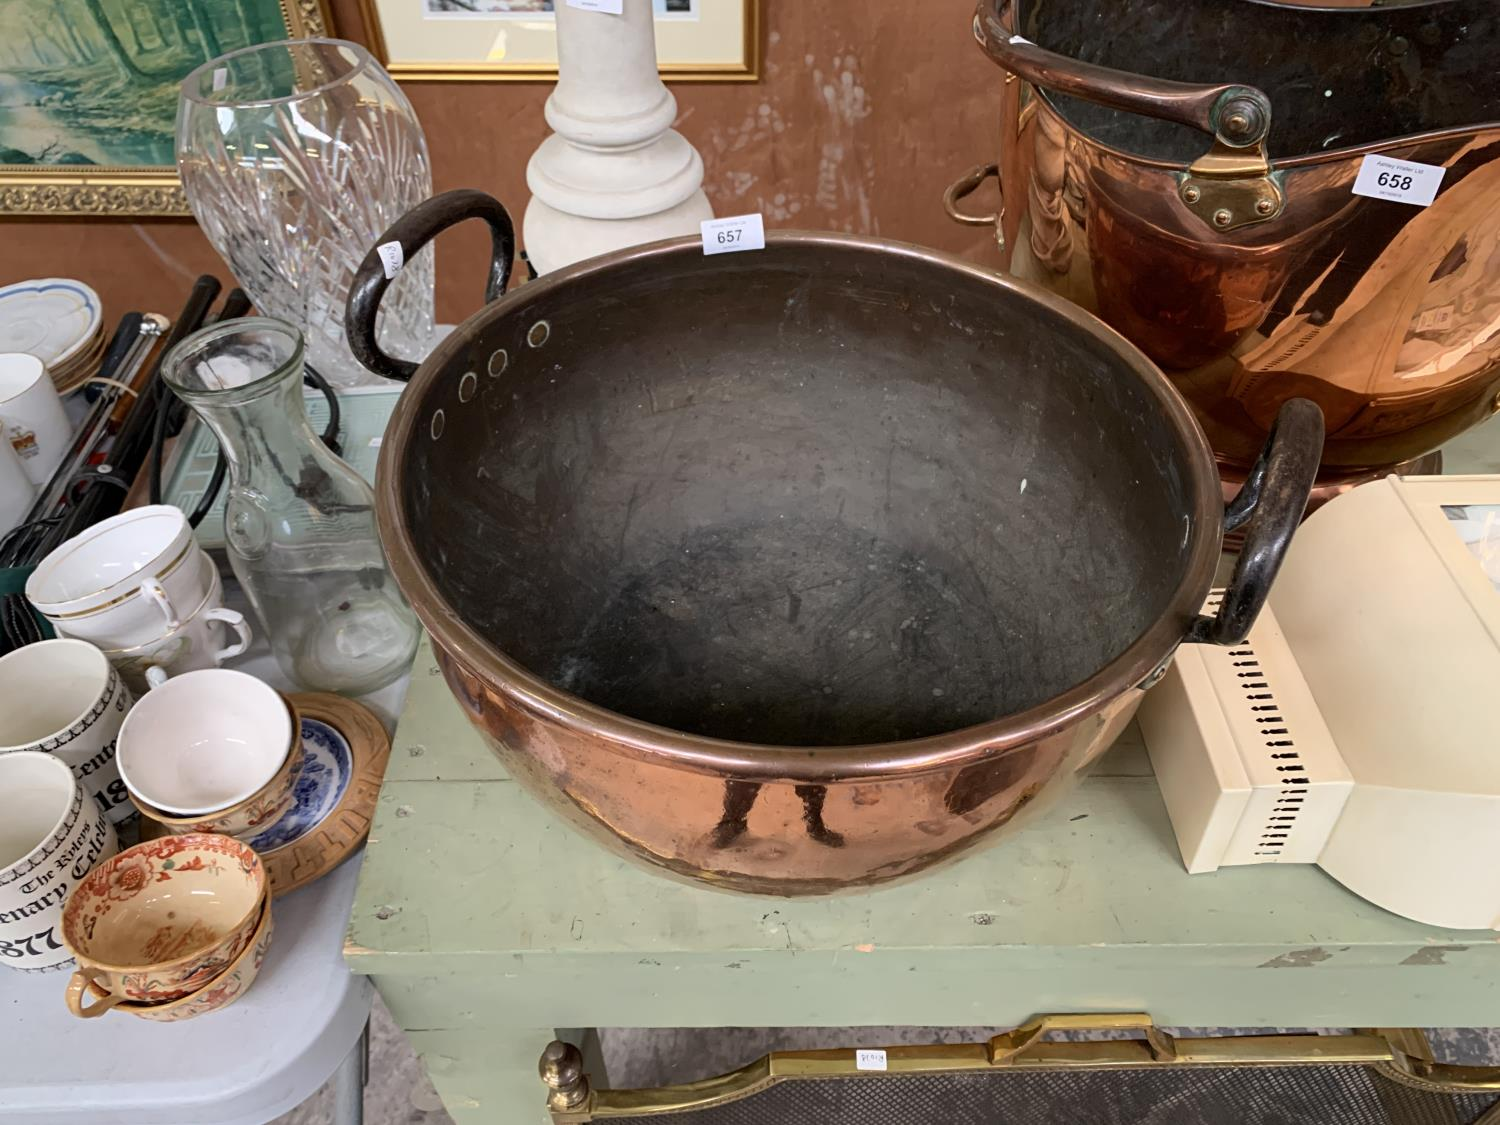 Lot 657 - A LARGE TWIN HANDLED COPPER BOWL